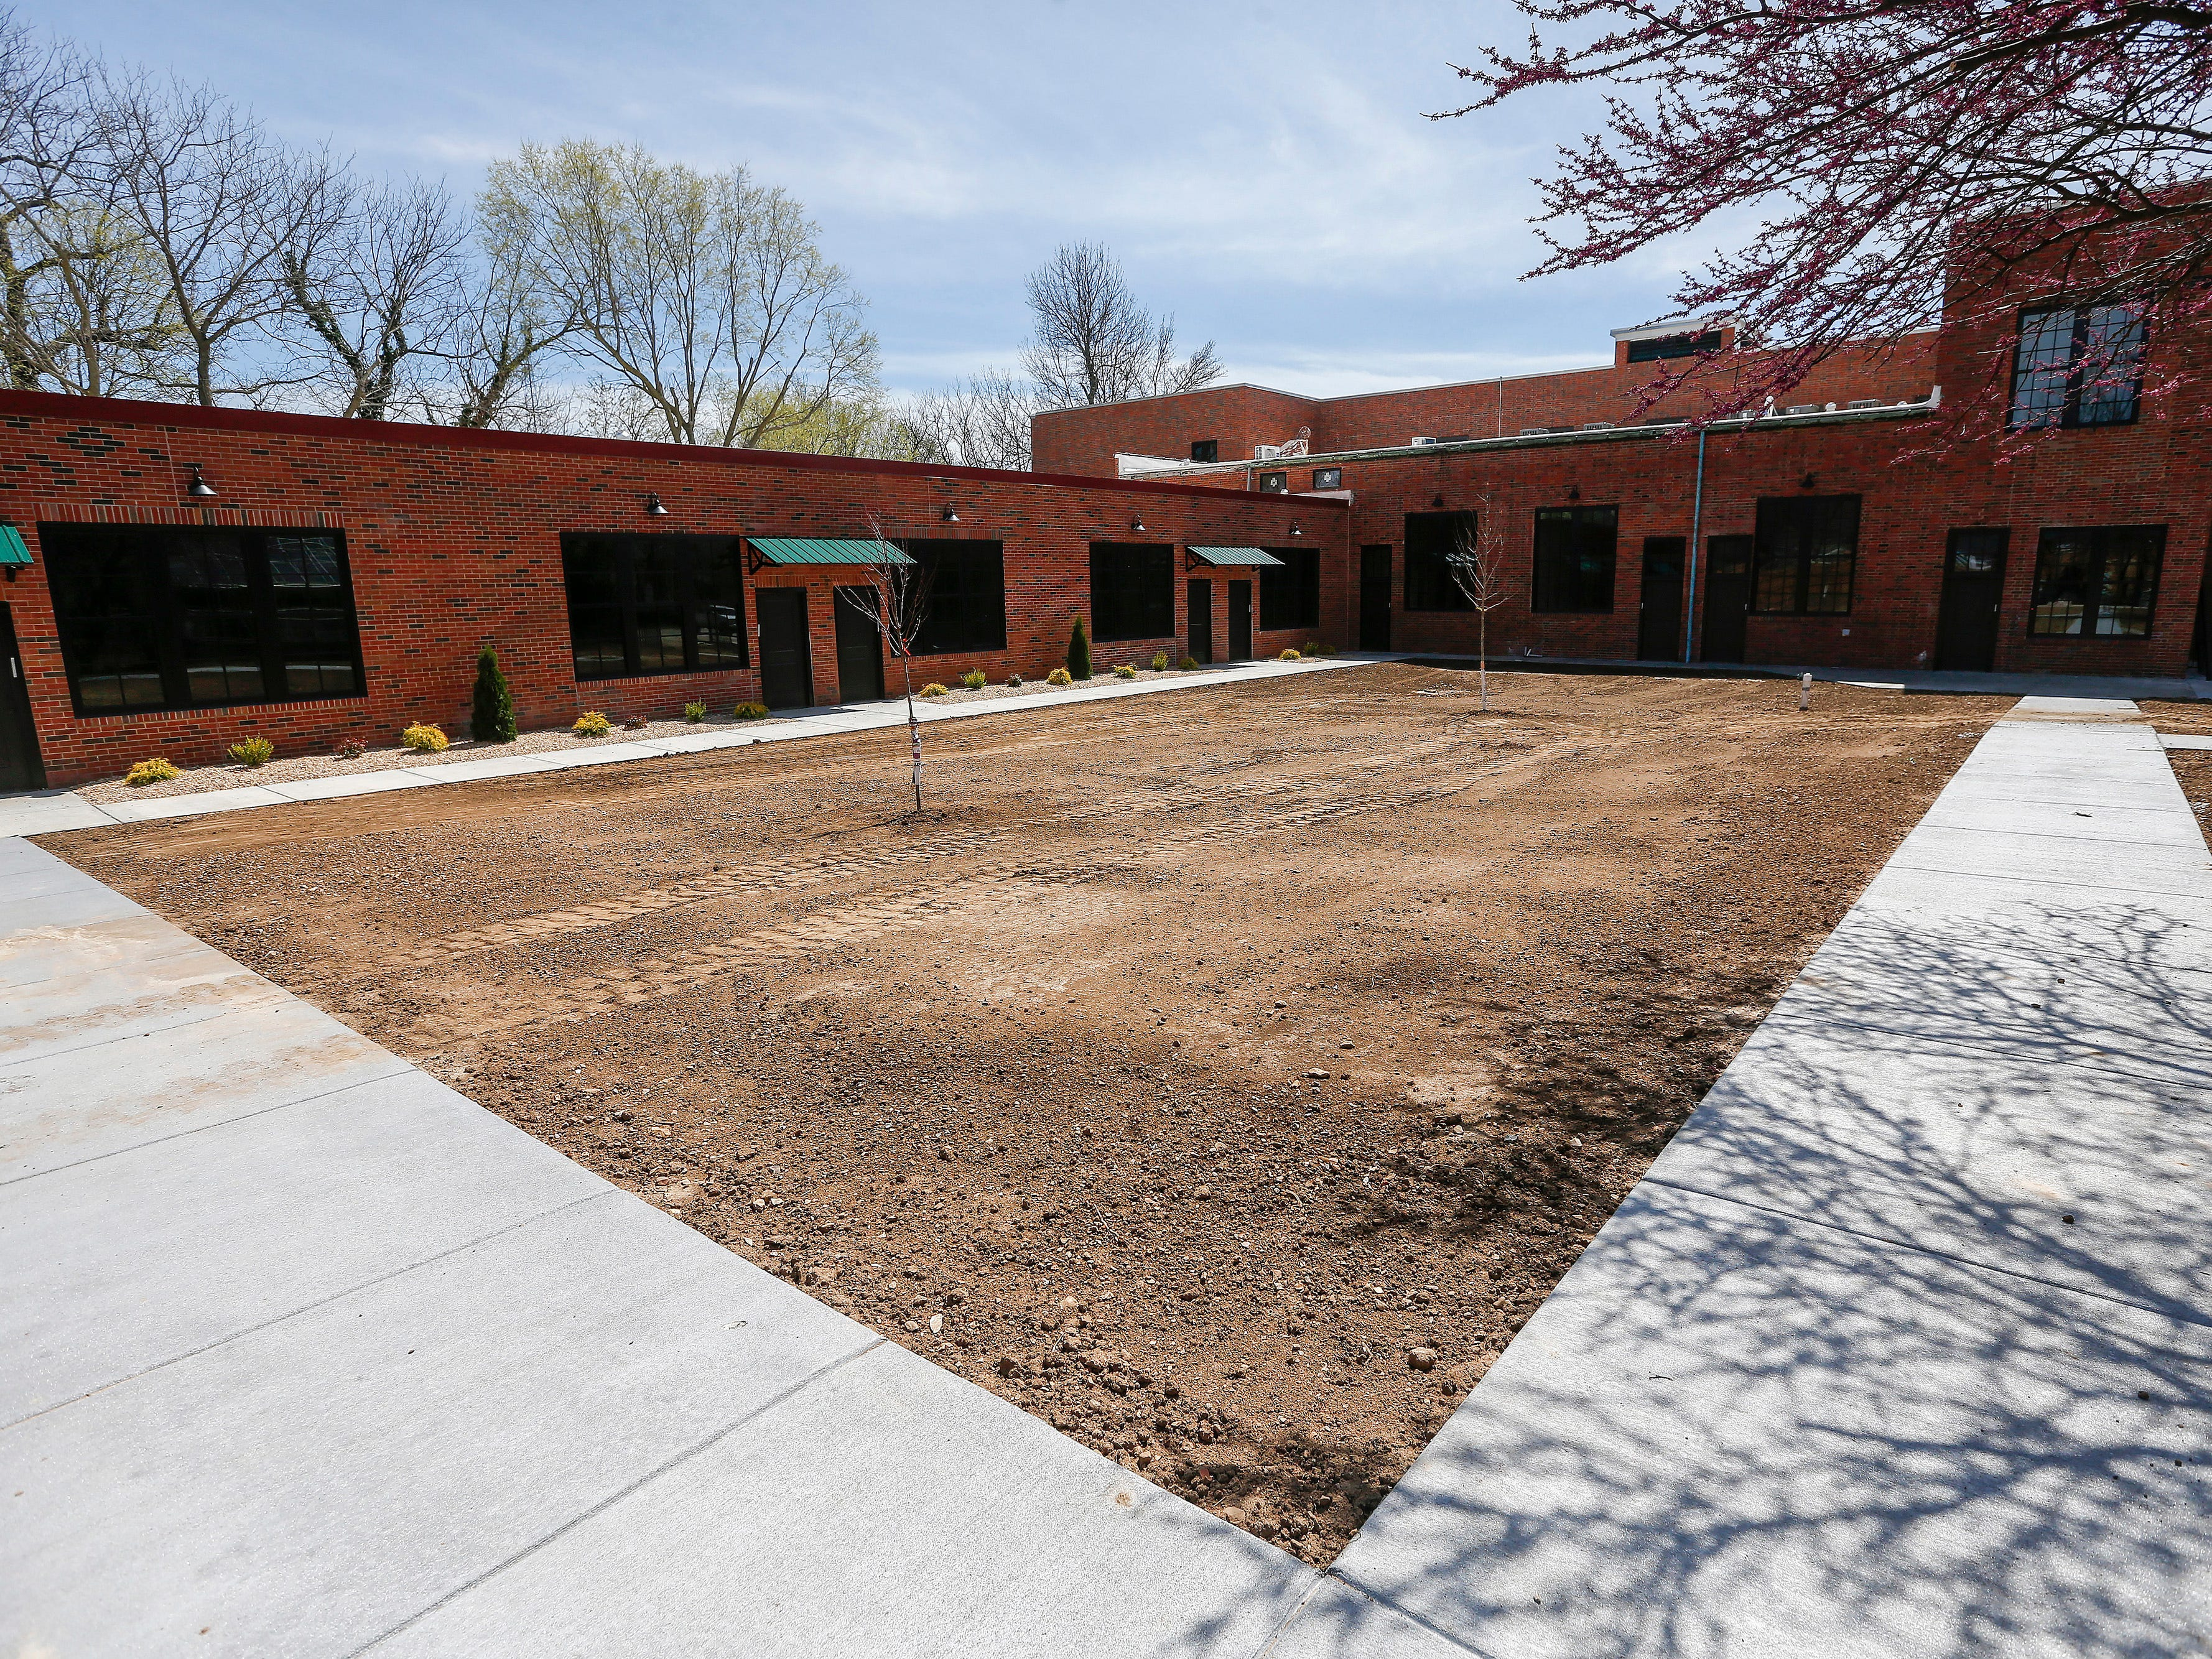 The outdoor common area at the Bailey School Lofts will be a park-like setting.